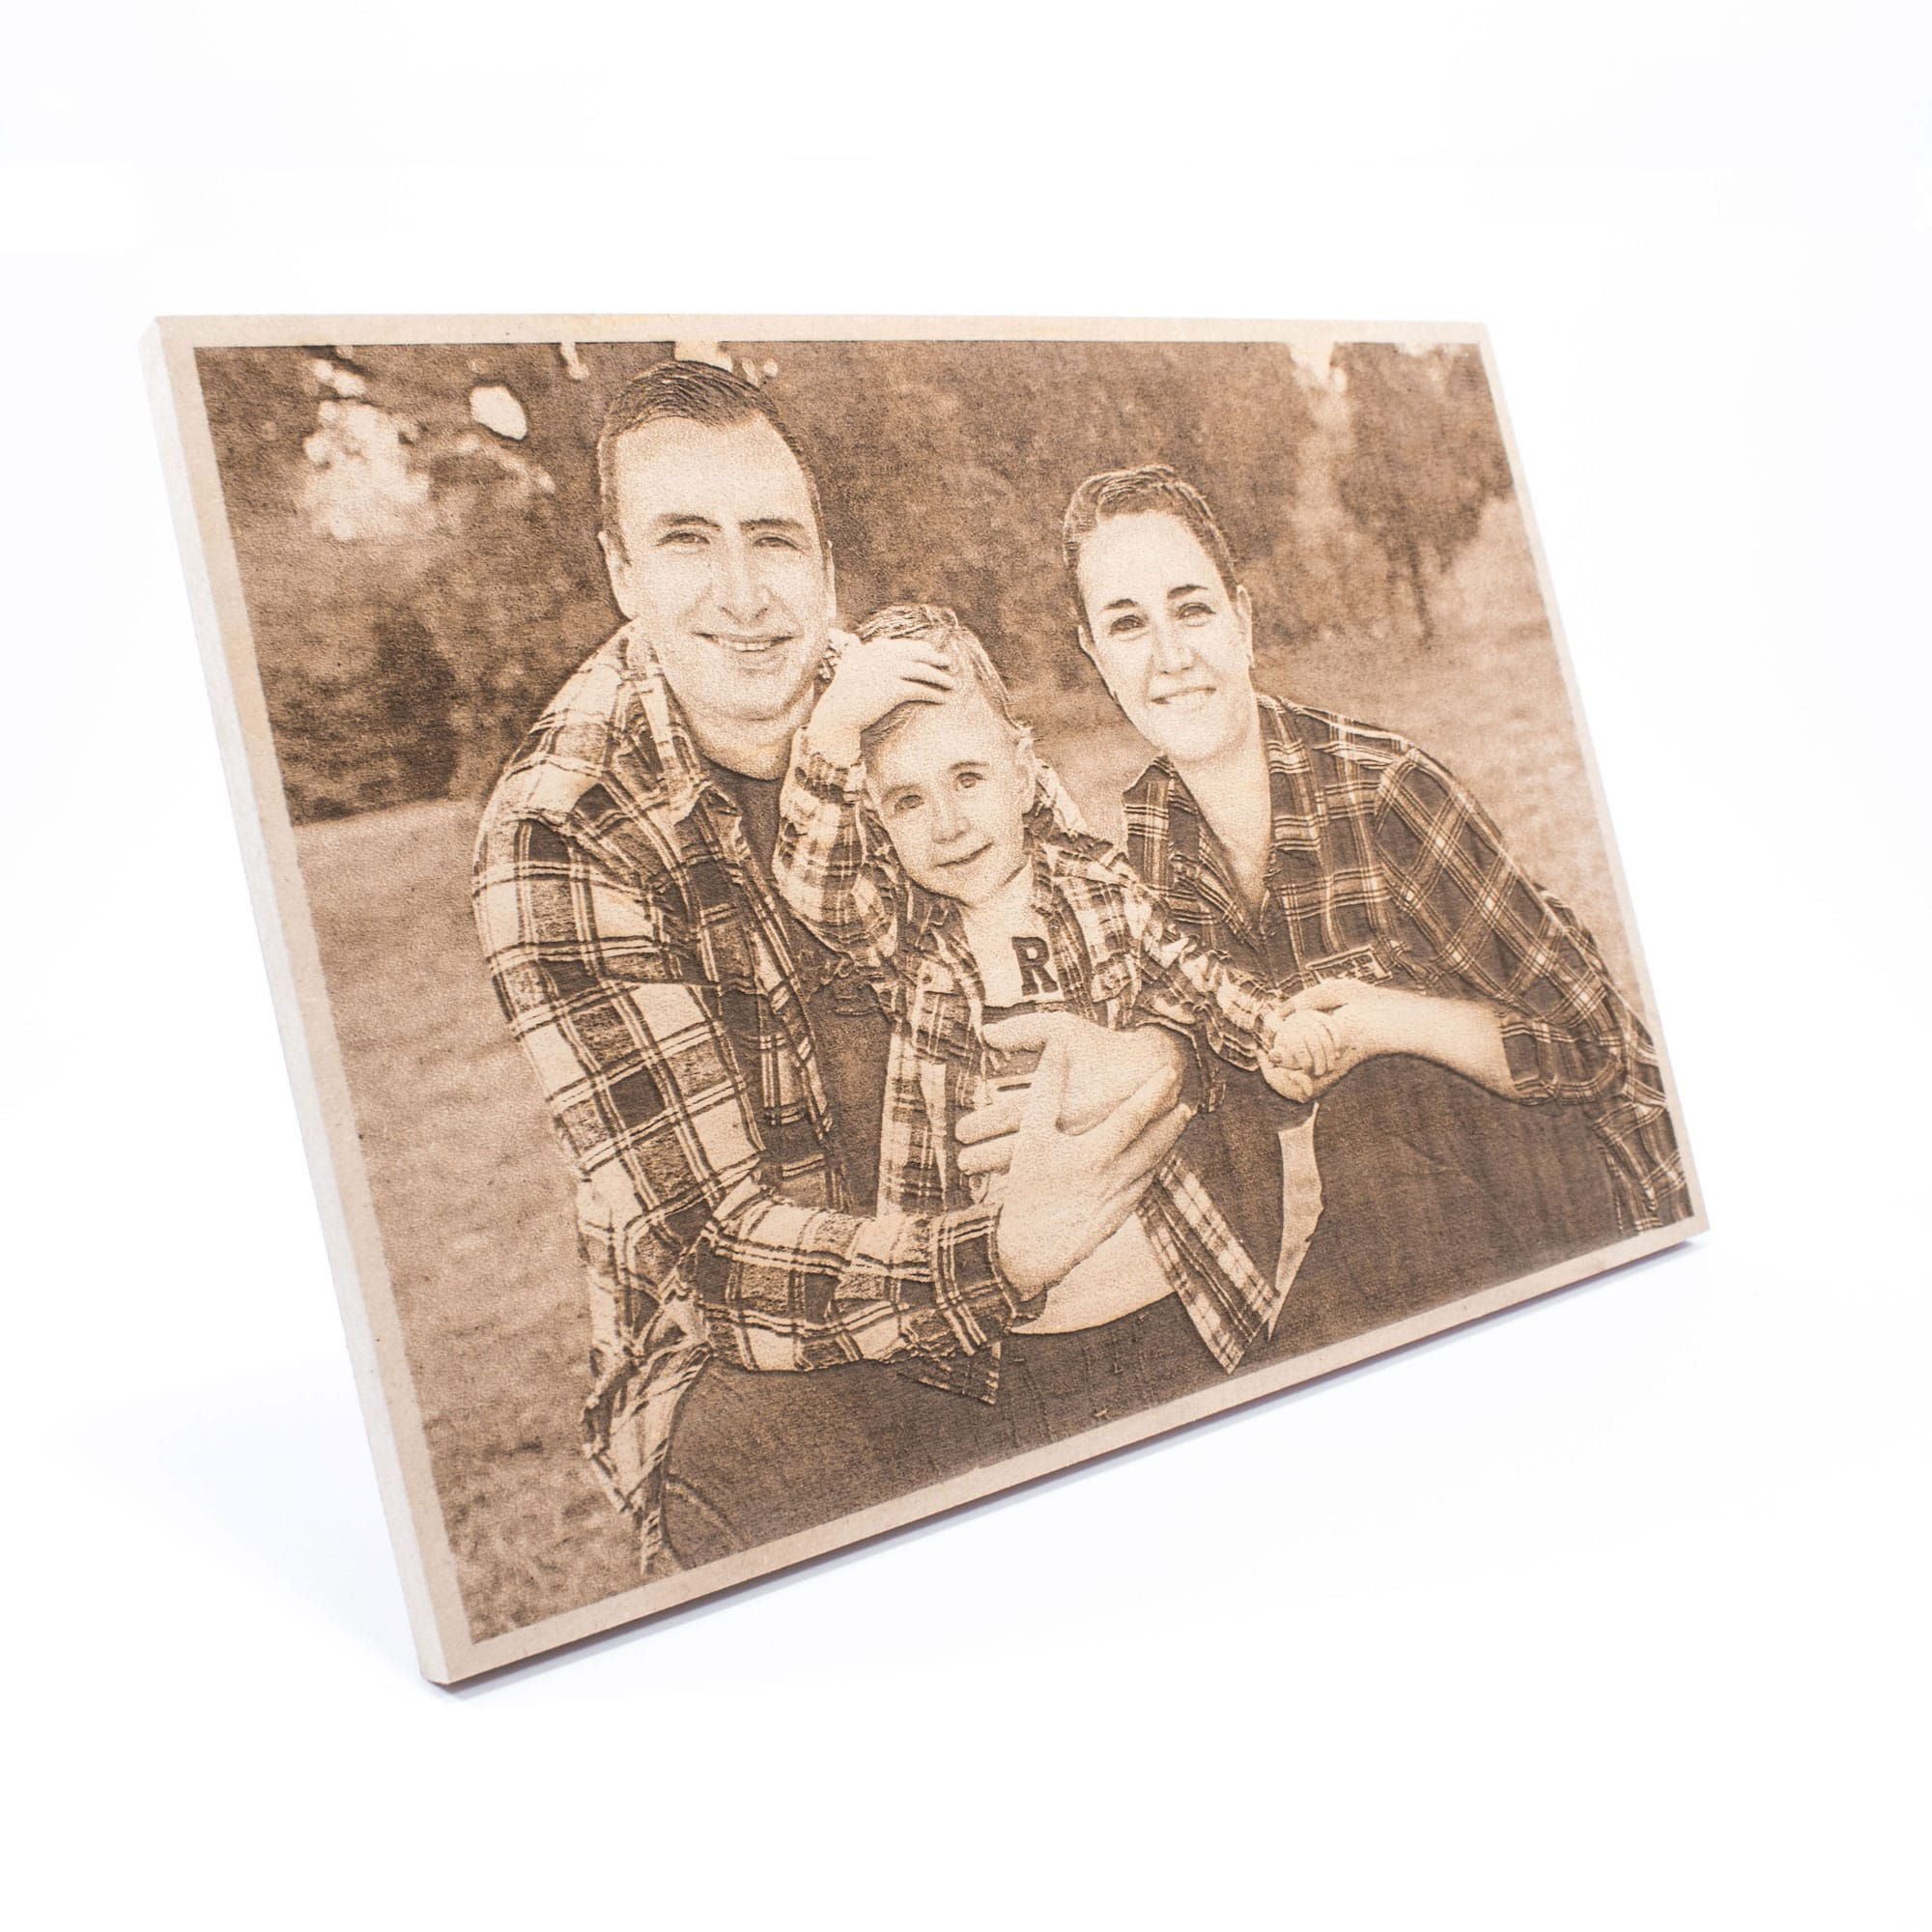 Woodprint of a personal photo